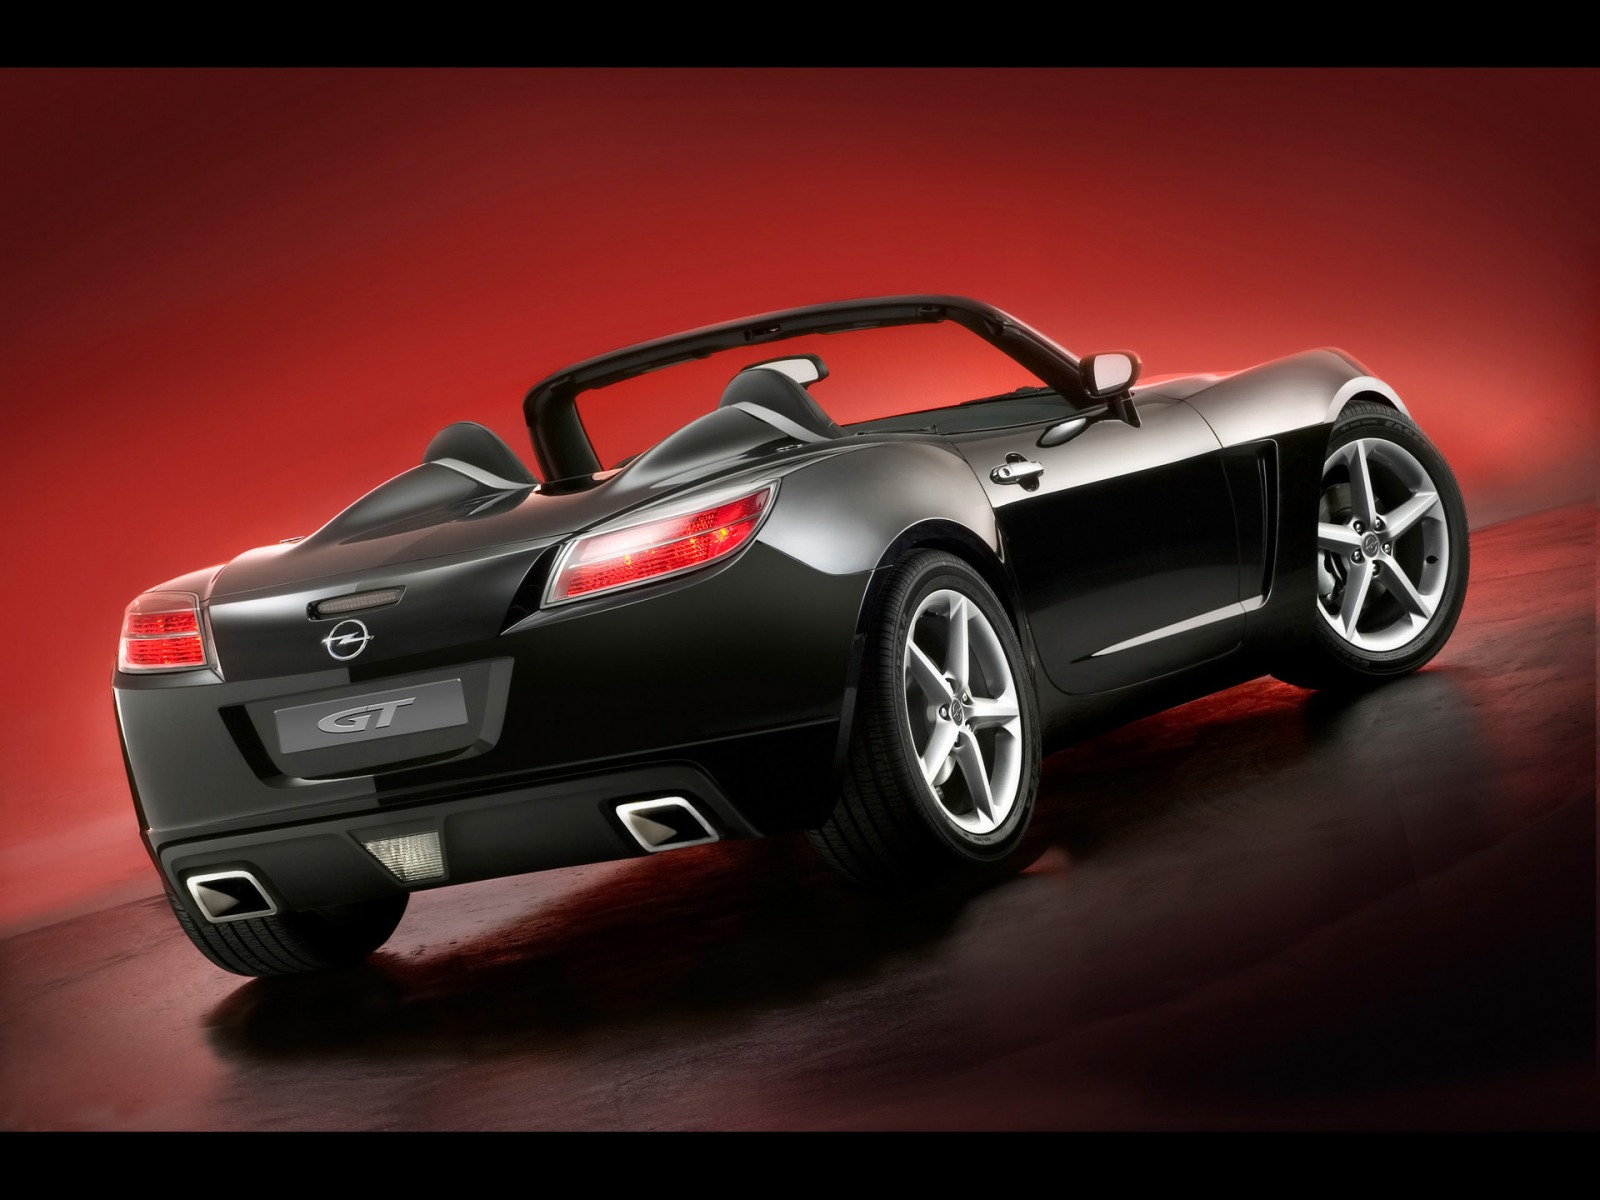 Opel Gt Cabrio Wallpaper Opel Cars Wallpapers In Jpg Format For